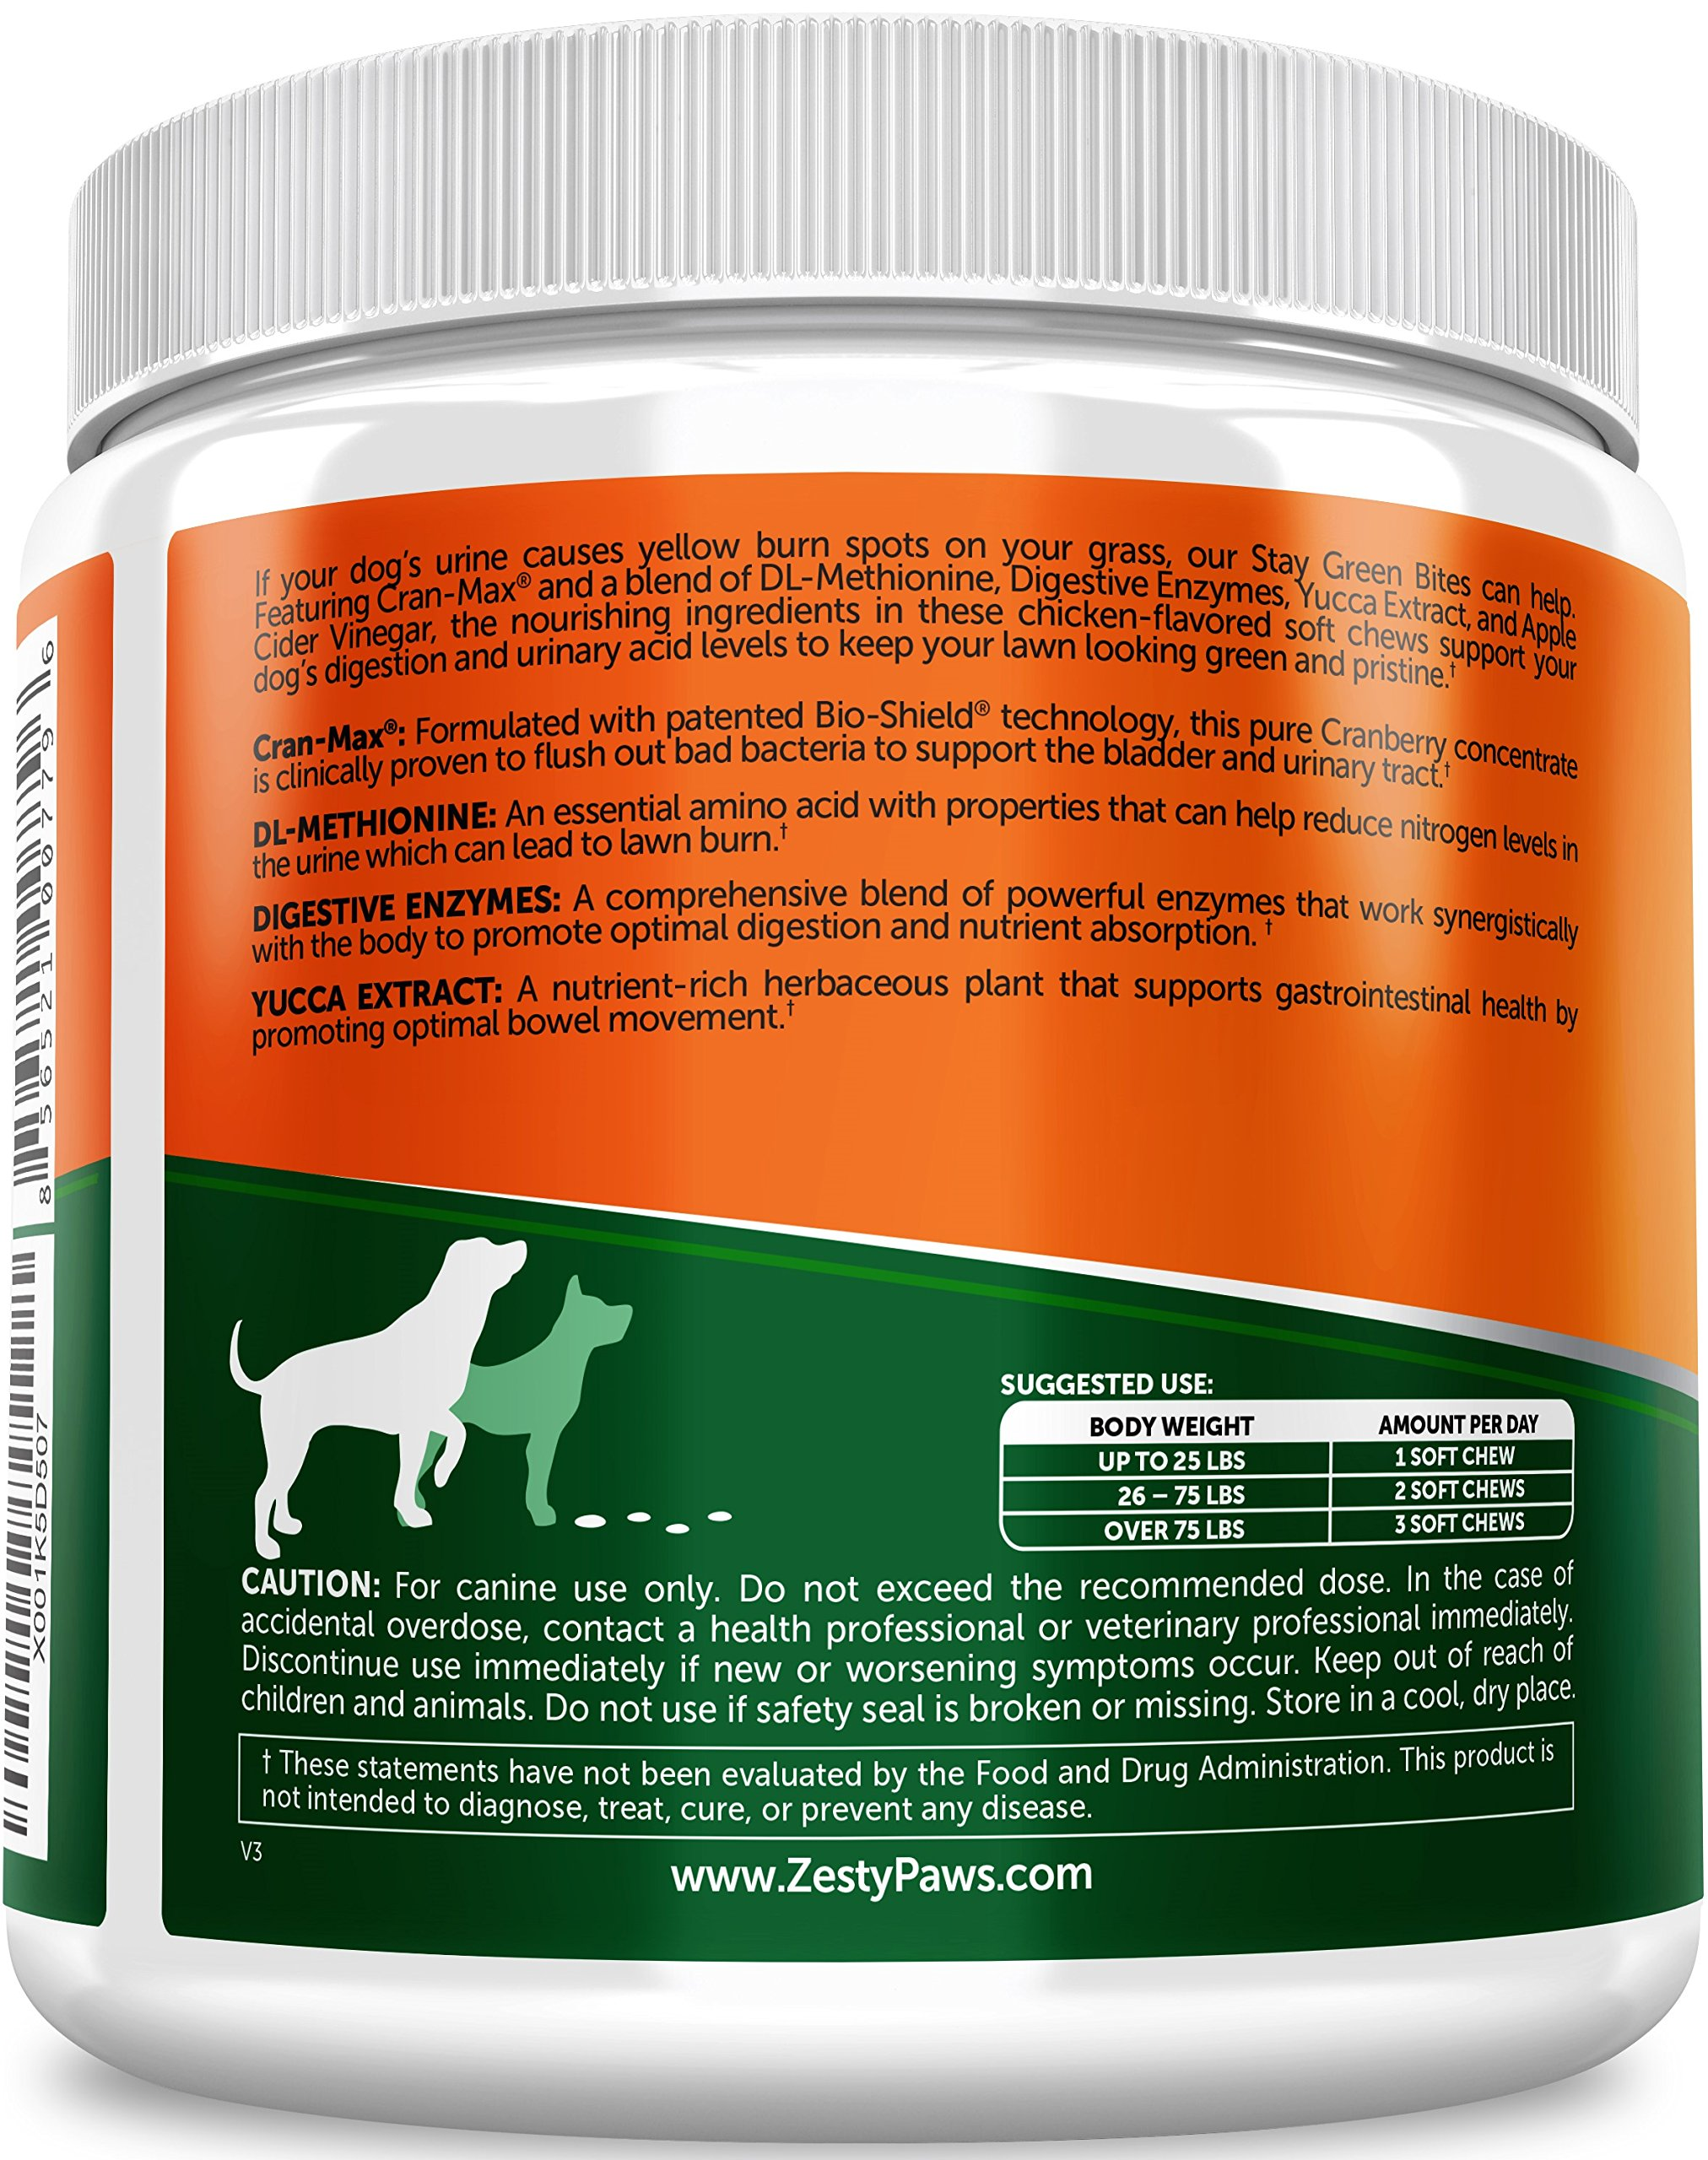 Grass Burn Spot Chews for Dogs - For Lawn Spots Caused by Dog Urine - Cran-Max Cranberry for Urinary Tract, Kidney & Bladder - Apple Cider Vinegar + Digestive Enzymes & DL-Methionine - 90 Chew Treats by Zesty Paws (Image #3)